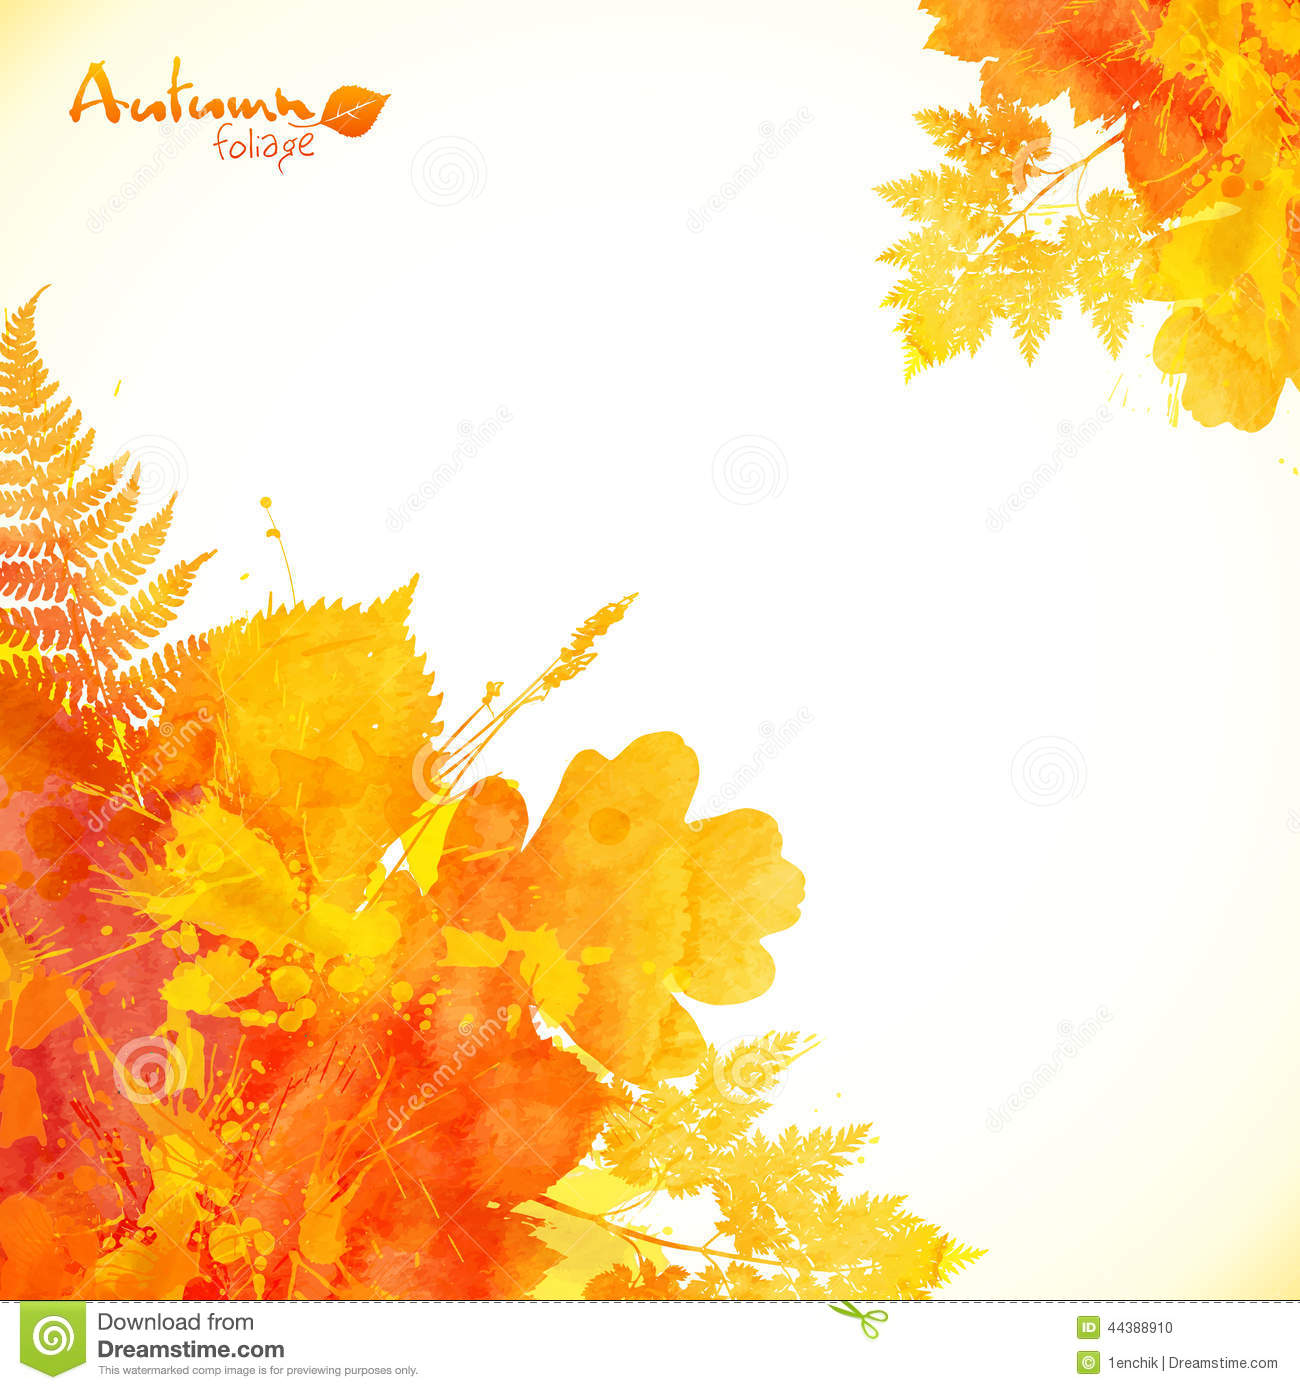 Watercolor Painting My Way! Autumn Leaves L15  WetCanvas